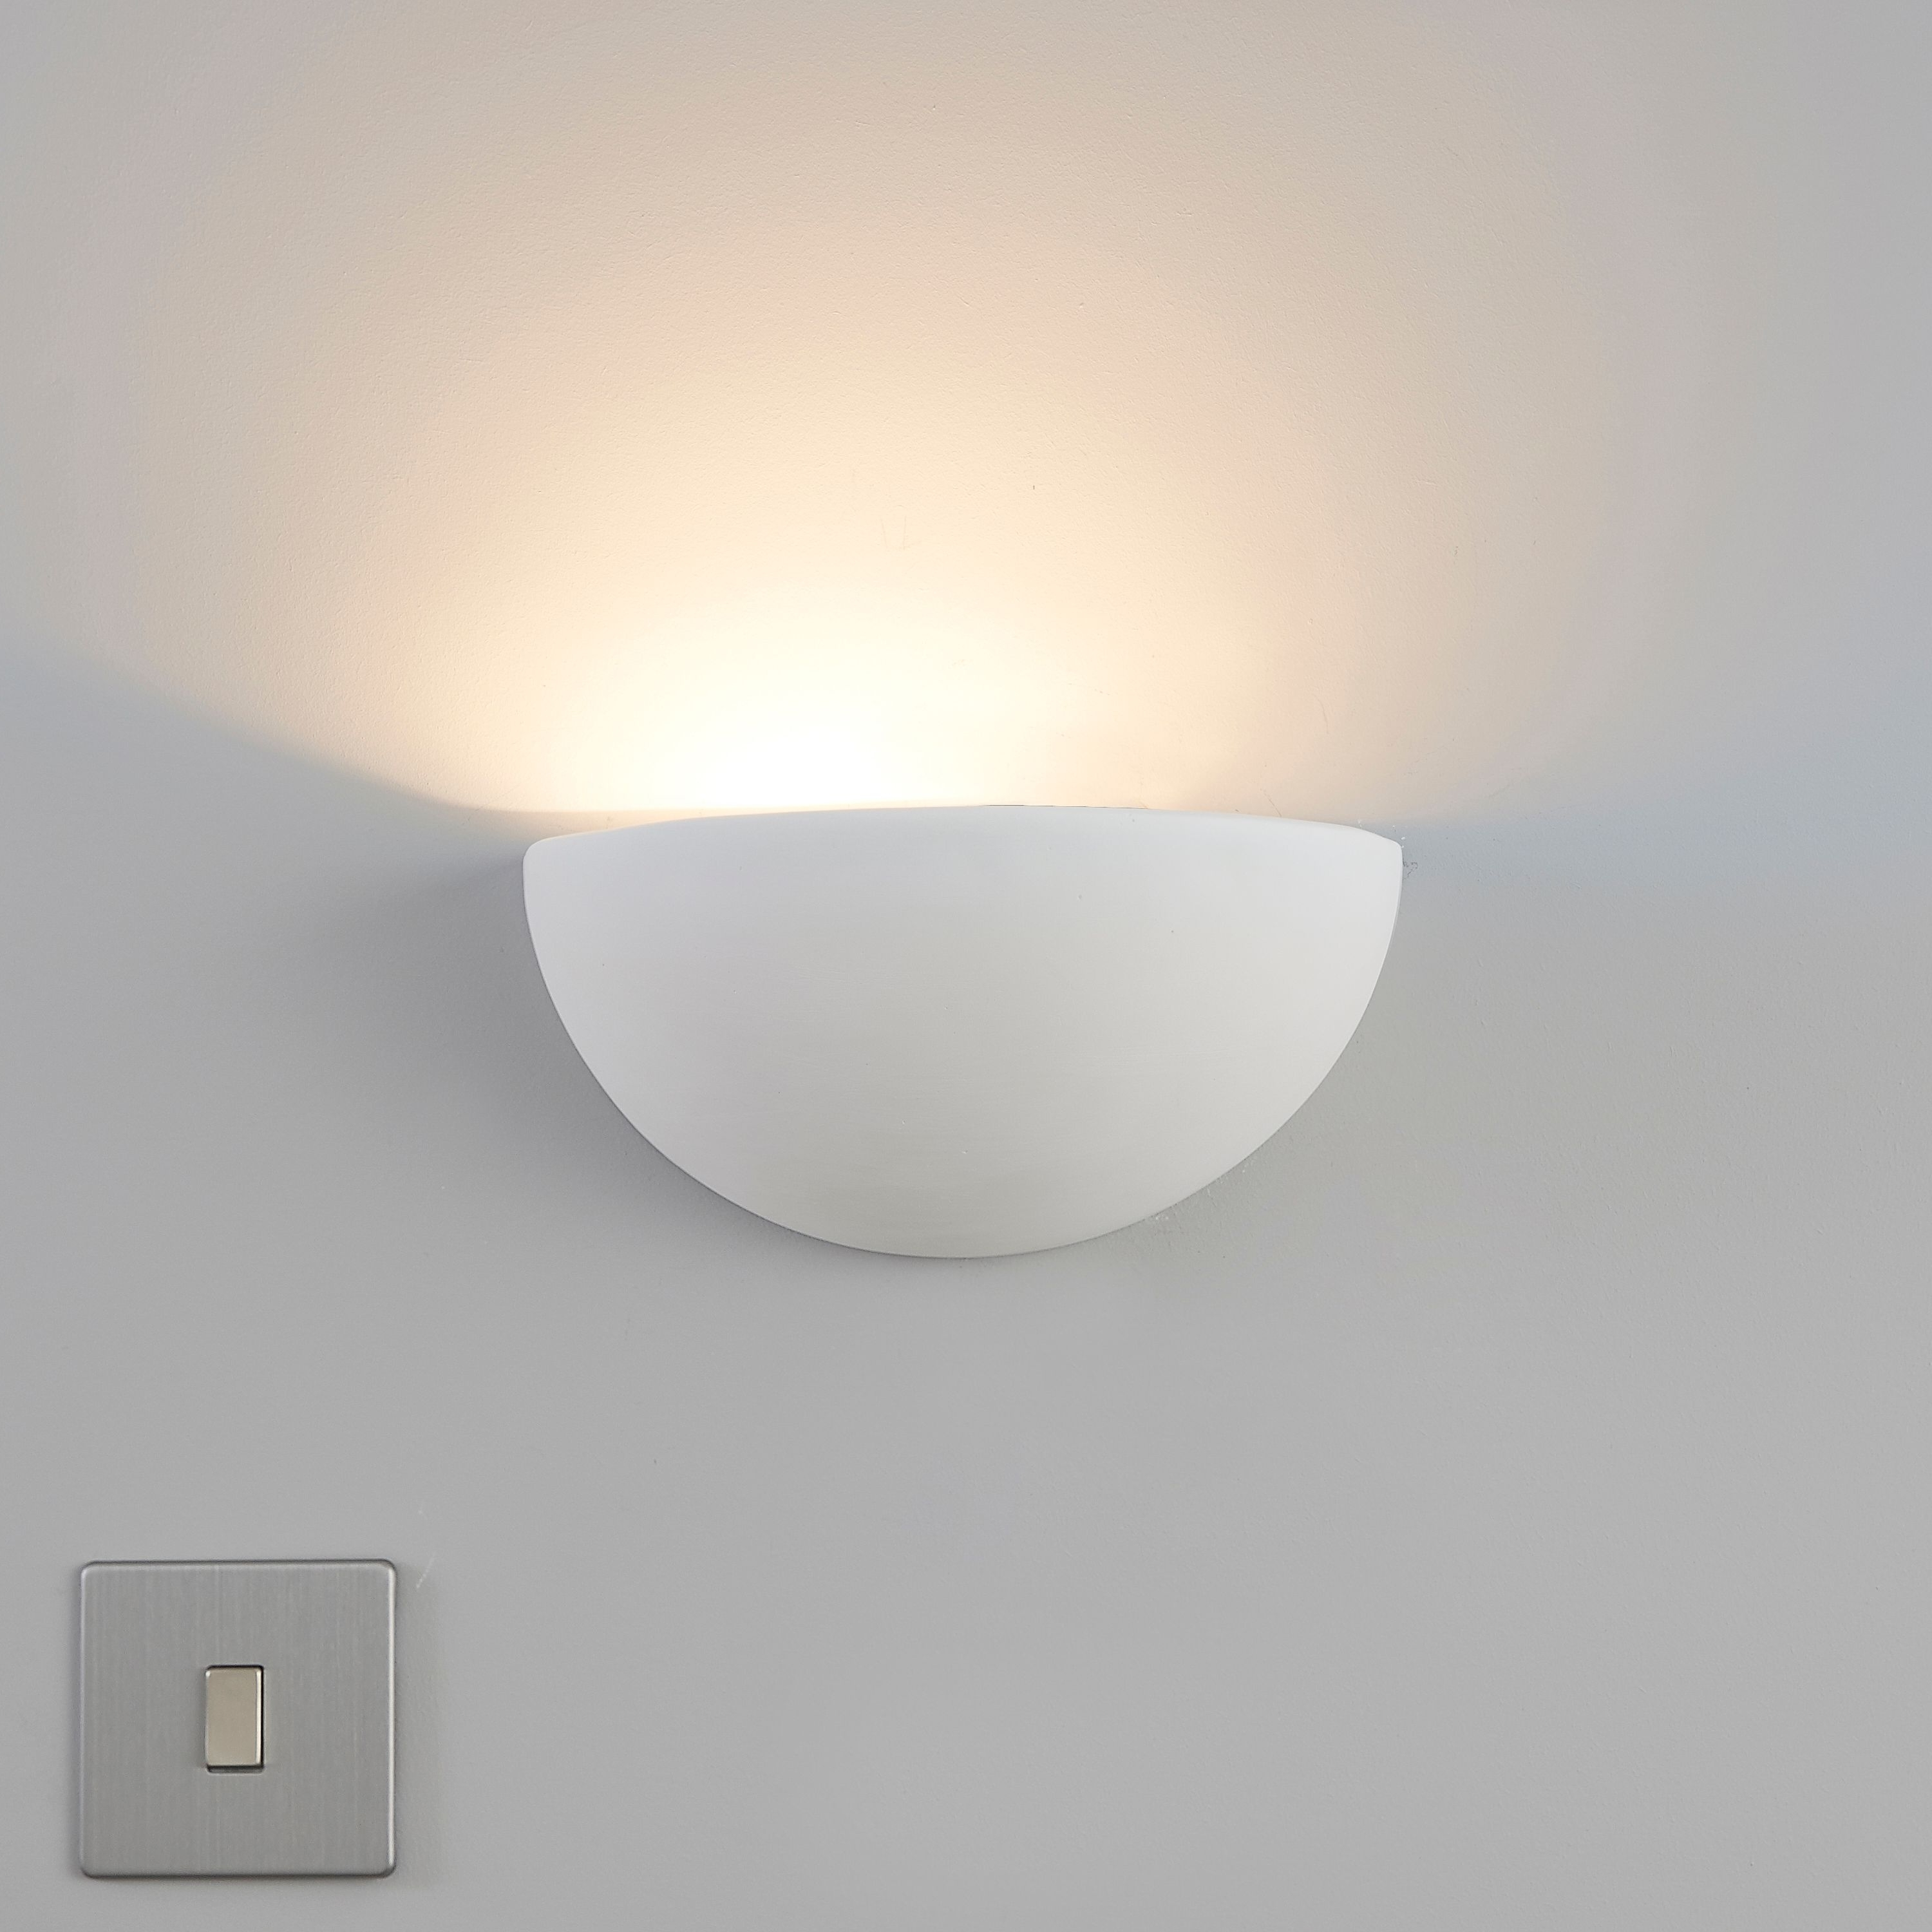 Popular Outdoor Wall Lighting At B&q With Aura Cream Wall Uplighter (View 17 of 20)